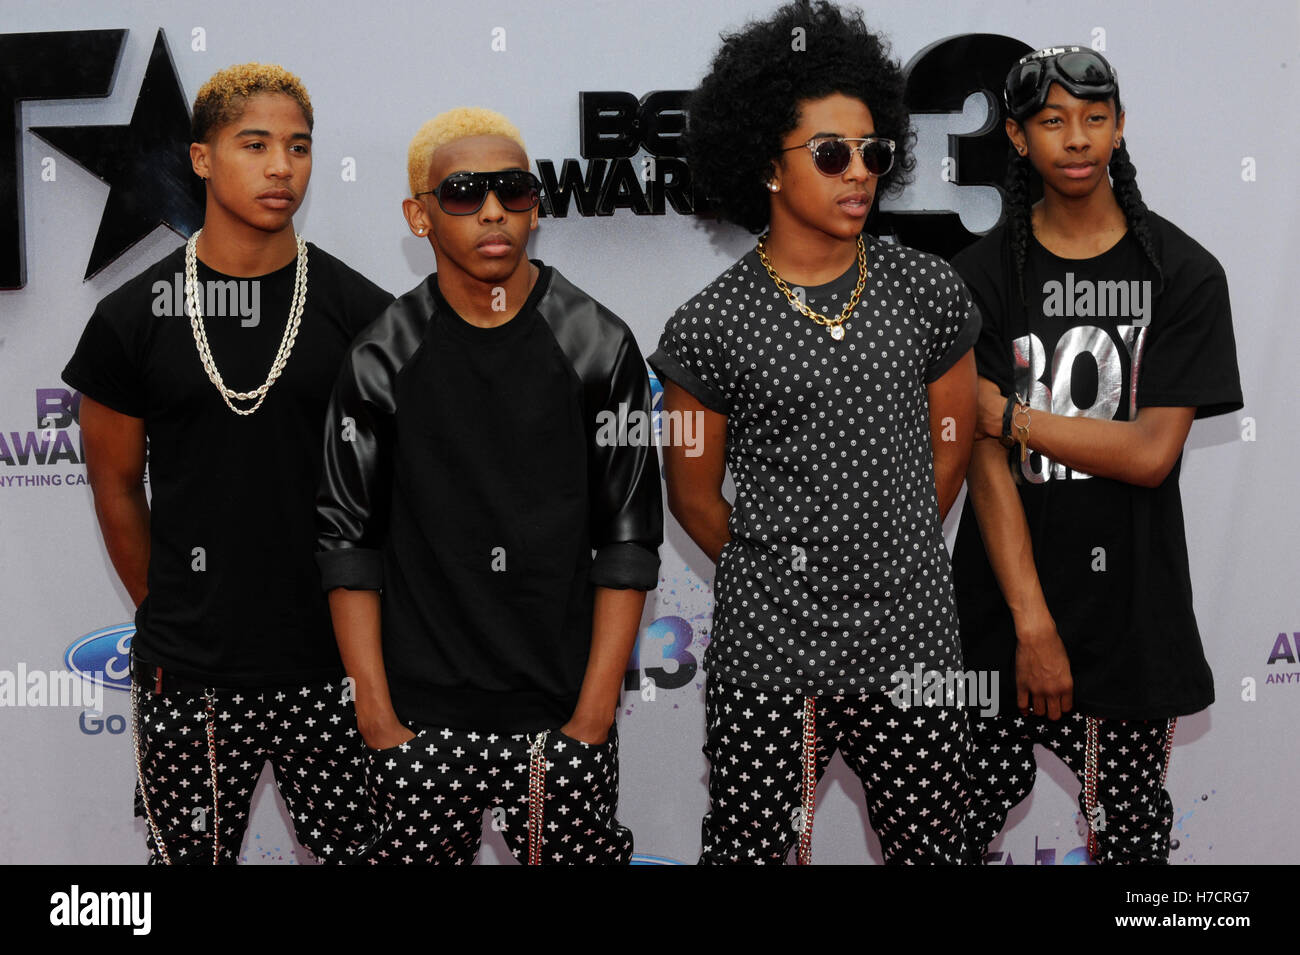 Mindless Behavior Pictures Photo Gallery m Pictures of the mindless behavior